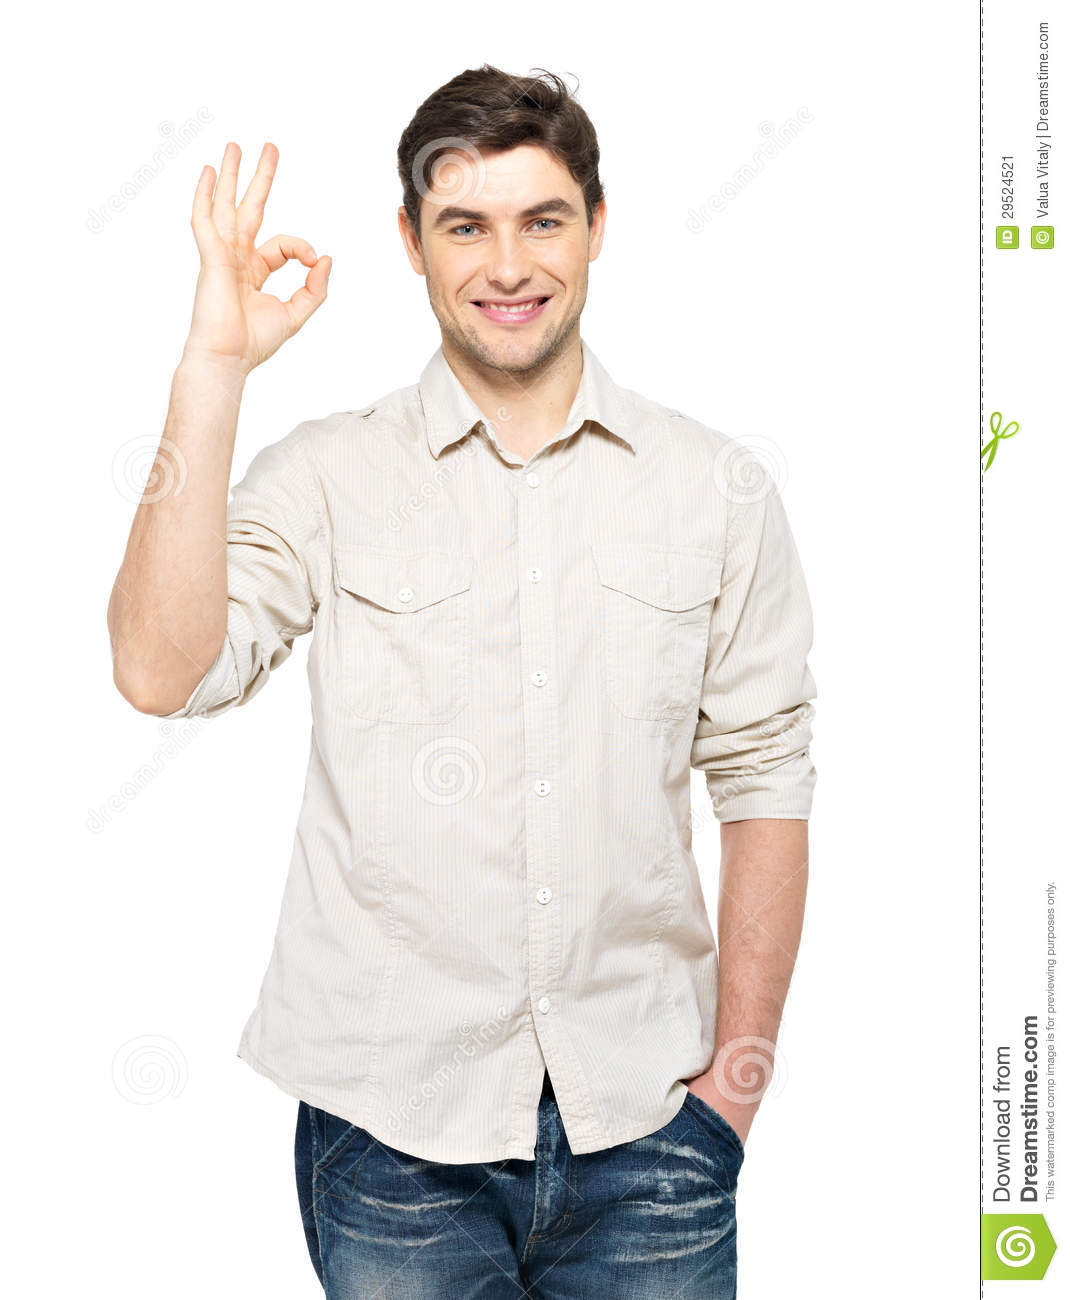 young-happy-man-ok-sign-29524521.jpg